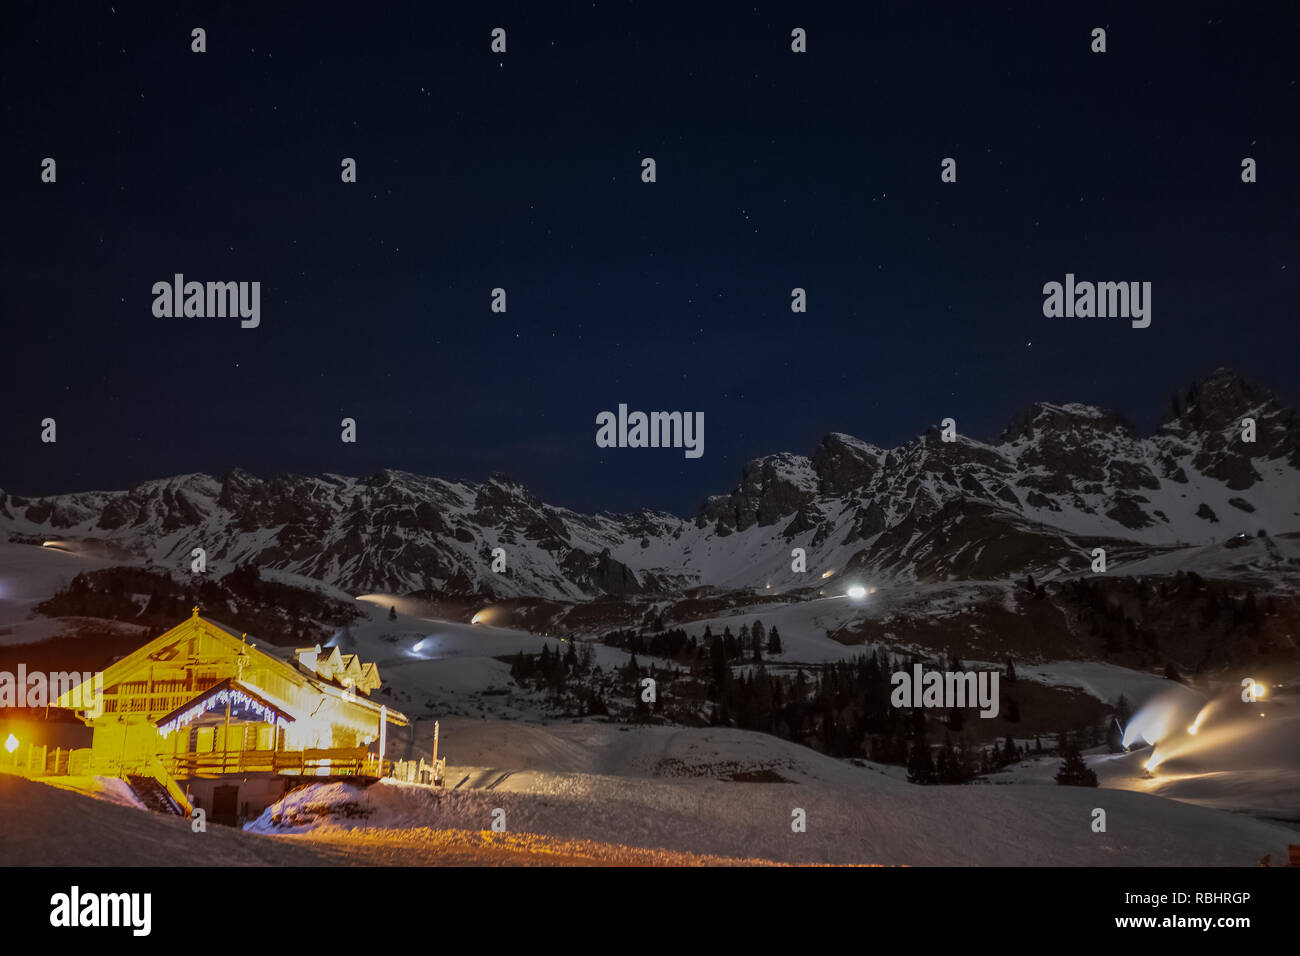 Illuminated chalet in the evening with snow cannons on the background preparing the ski slopes, Passo San Pellegrino, Dolomites, Italy Stock Photo